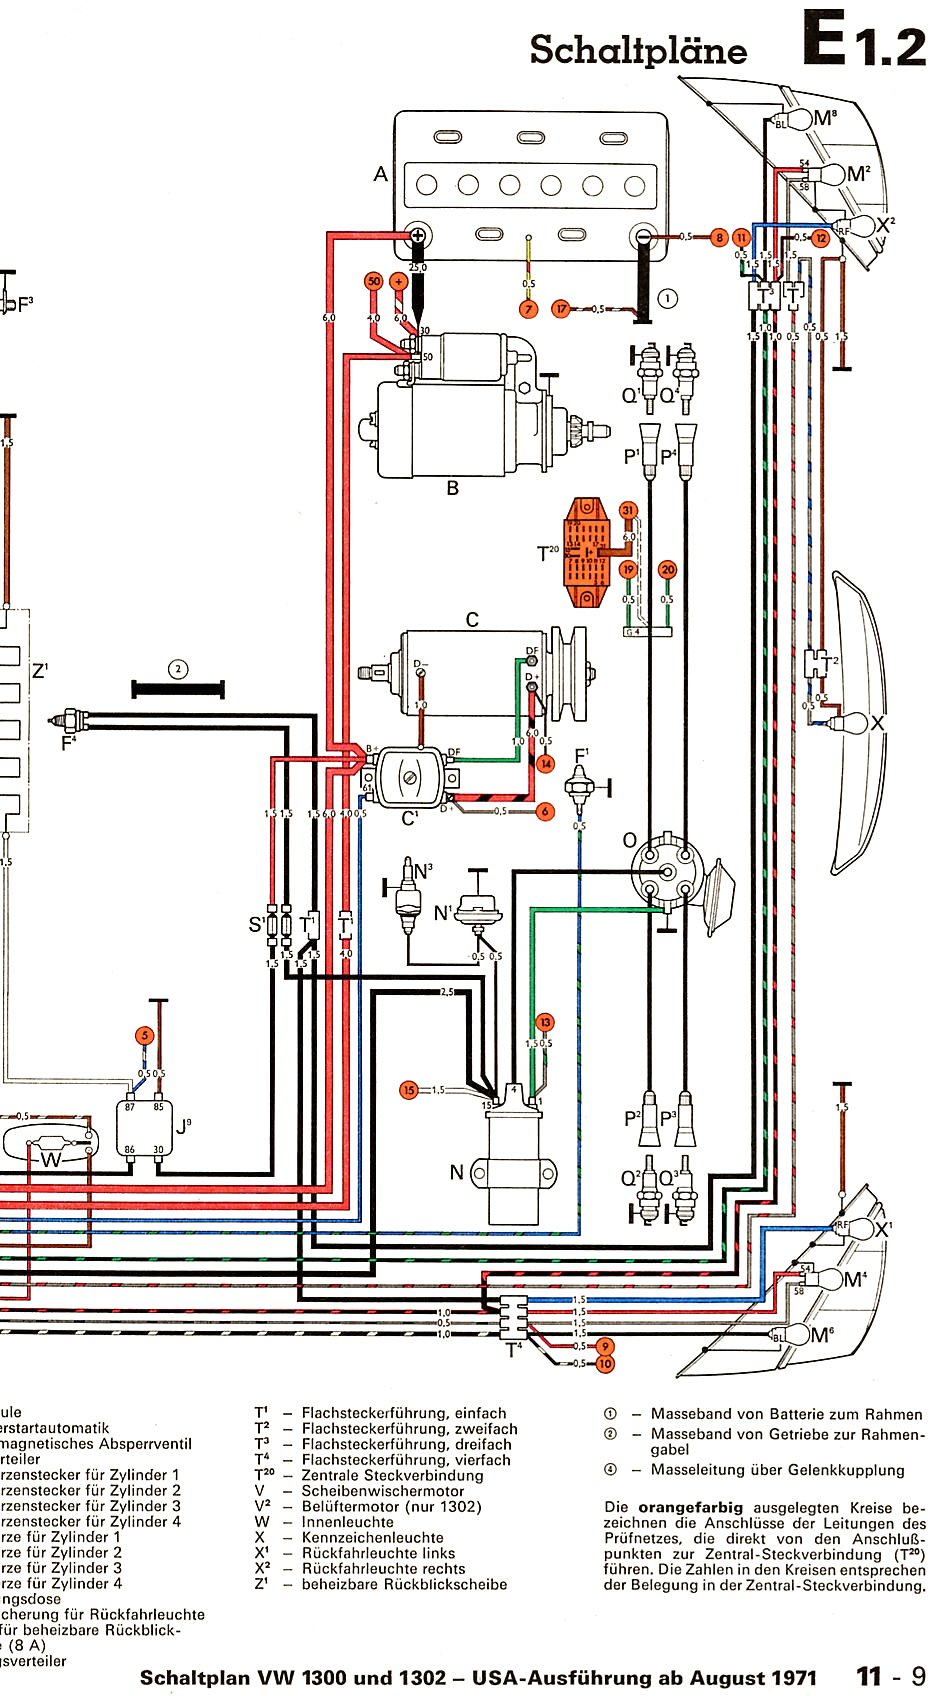 1300_and_1302_USA_from_August_1971 2 73 super beetle voltage regulator shoptalkforums com 1974 Super Beetle Wiring Diagram at reclaimingppi.co